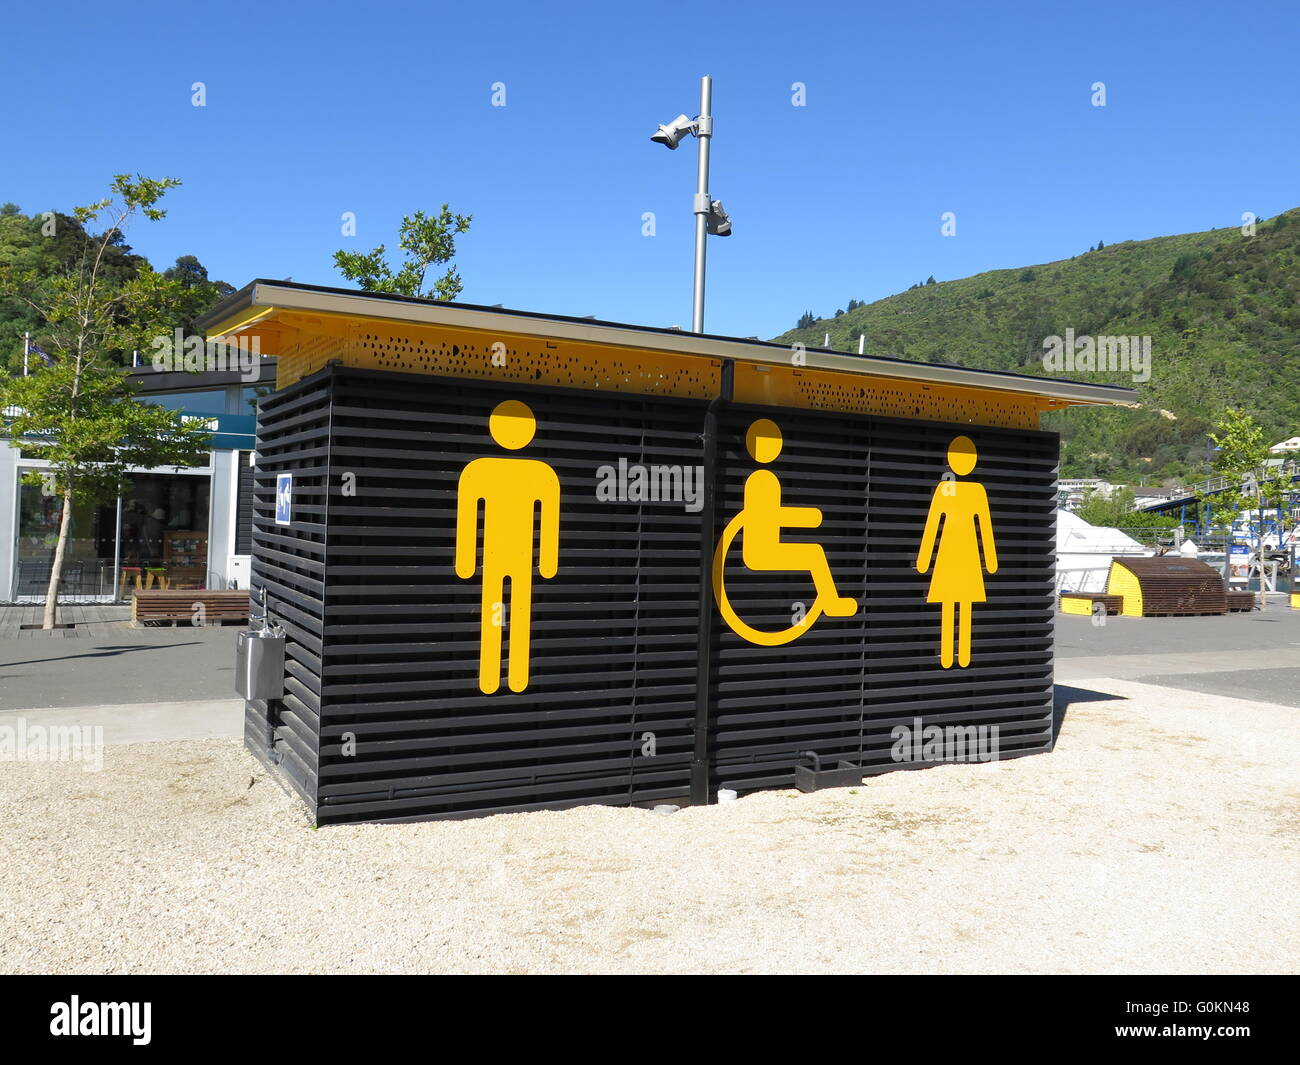 Public Toilet Block In Picton South Island New Zealand